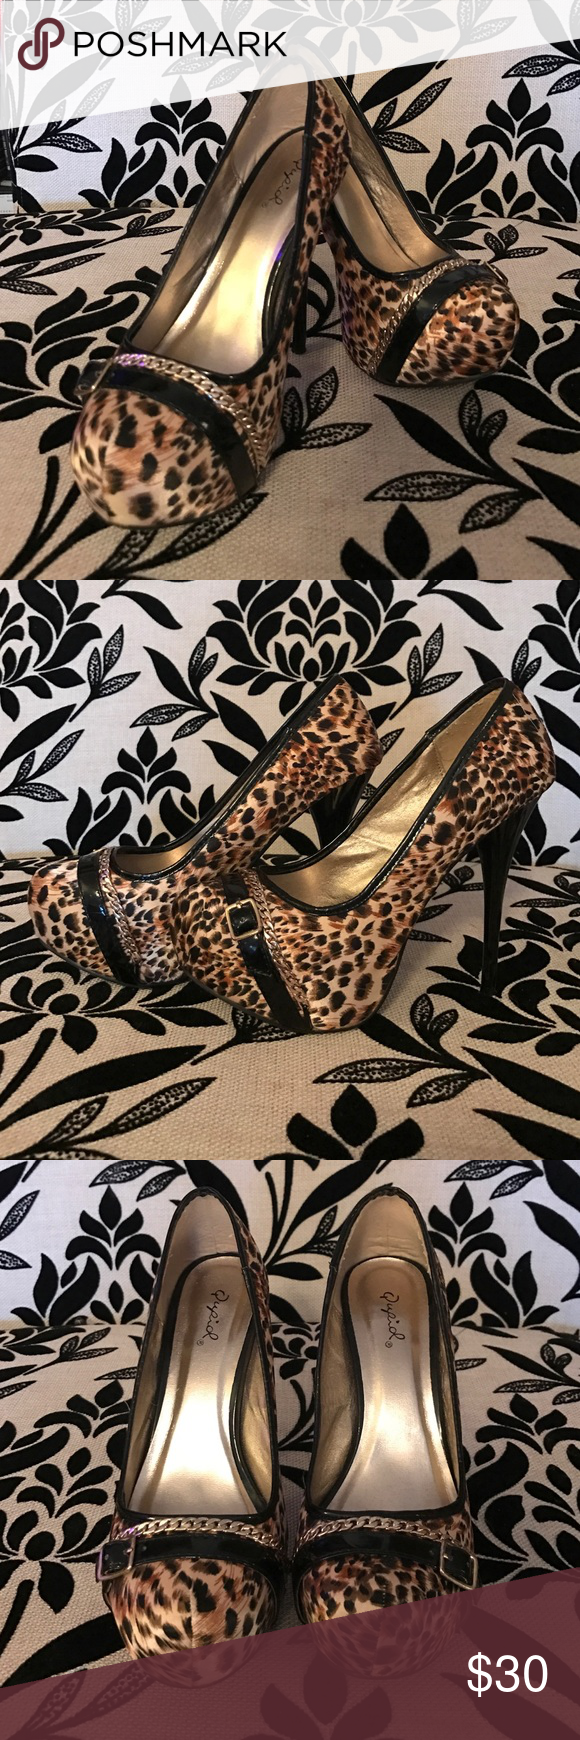 """Cheetah Print Gold Chain Buckle Stilettos EUC These shoes were worn once and only have wear on the sole (see photo).  They are otherwise in absolutely perfect condition as pictured in photo.  They are a true size 8.  The heel measures 6"""" with 1"""" platform.  Gold chain and buckle detail across toes. Qupid Shoes Heels"""